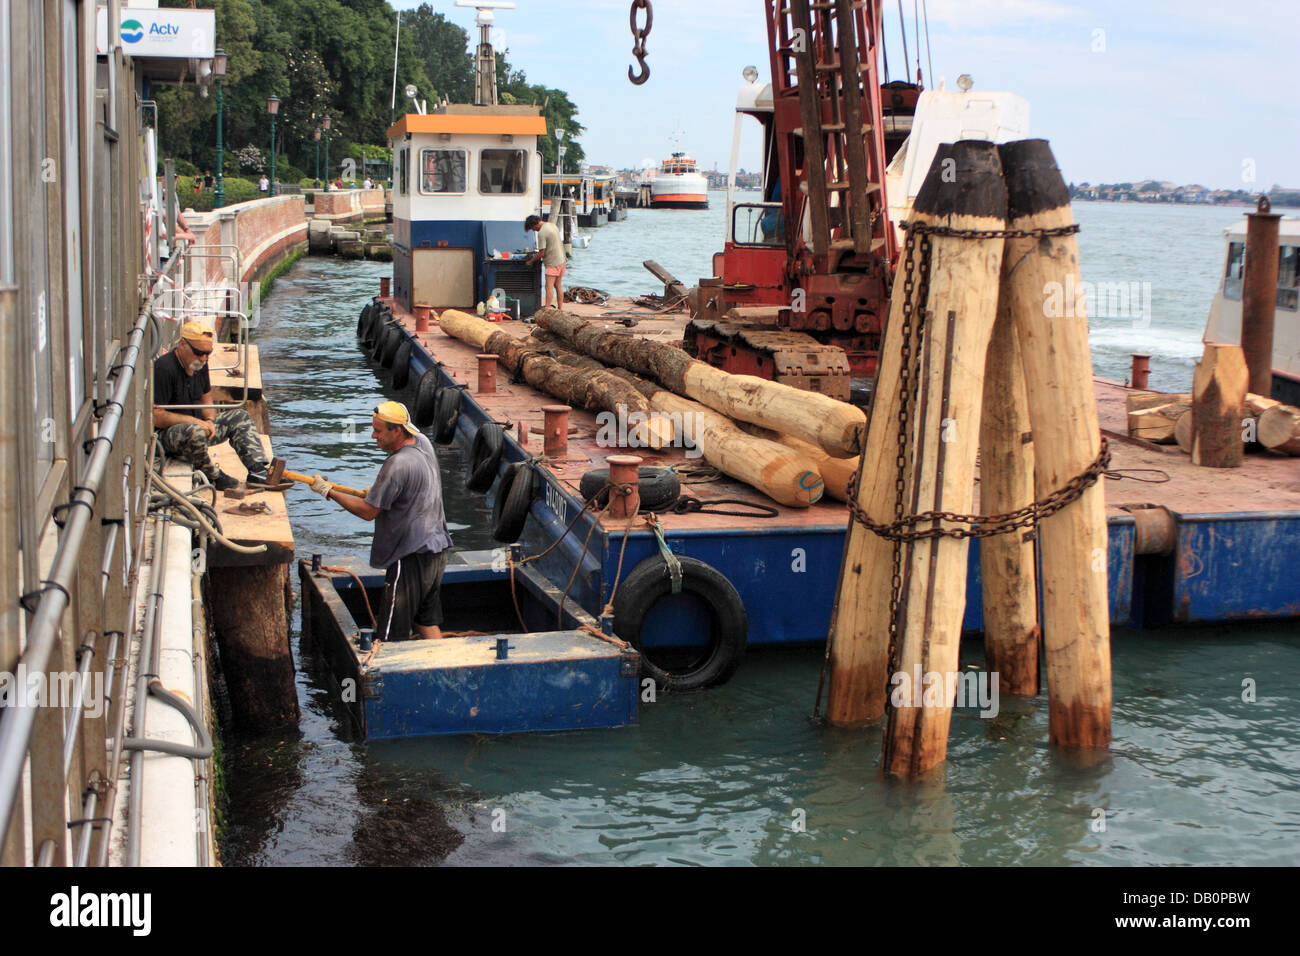 Construction work - rebuilding the wooden mooring poles of a Vaporetto stop. - Stock Image